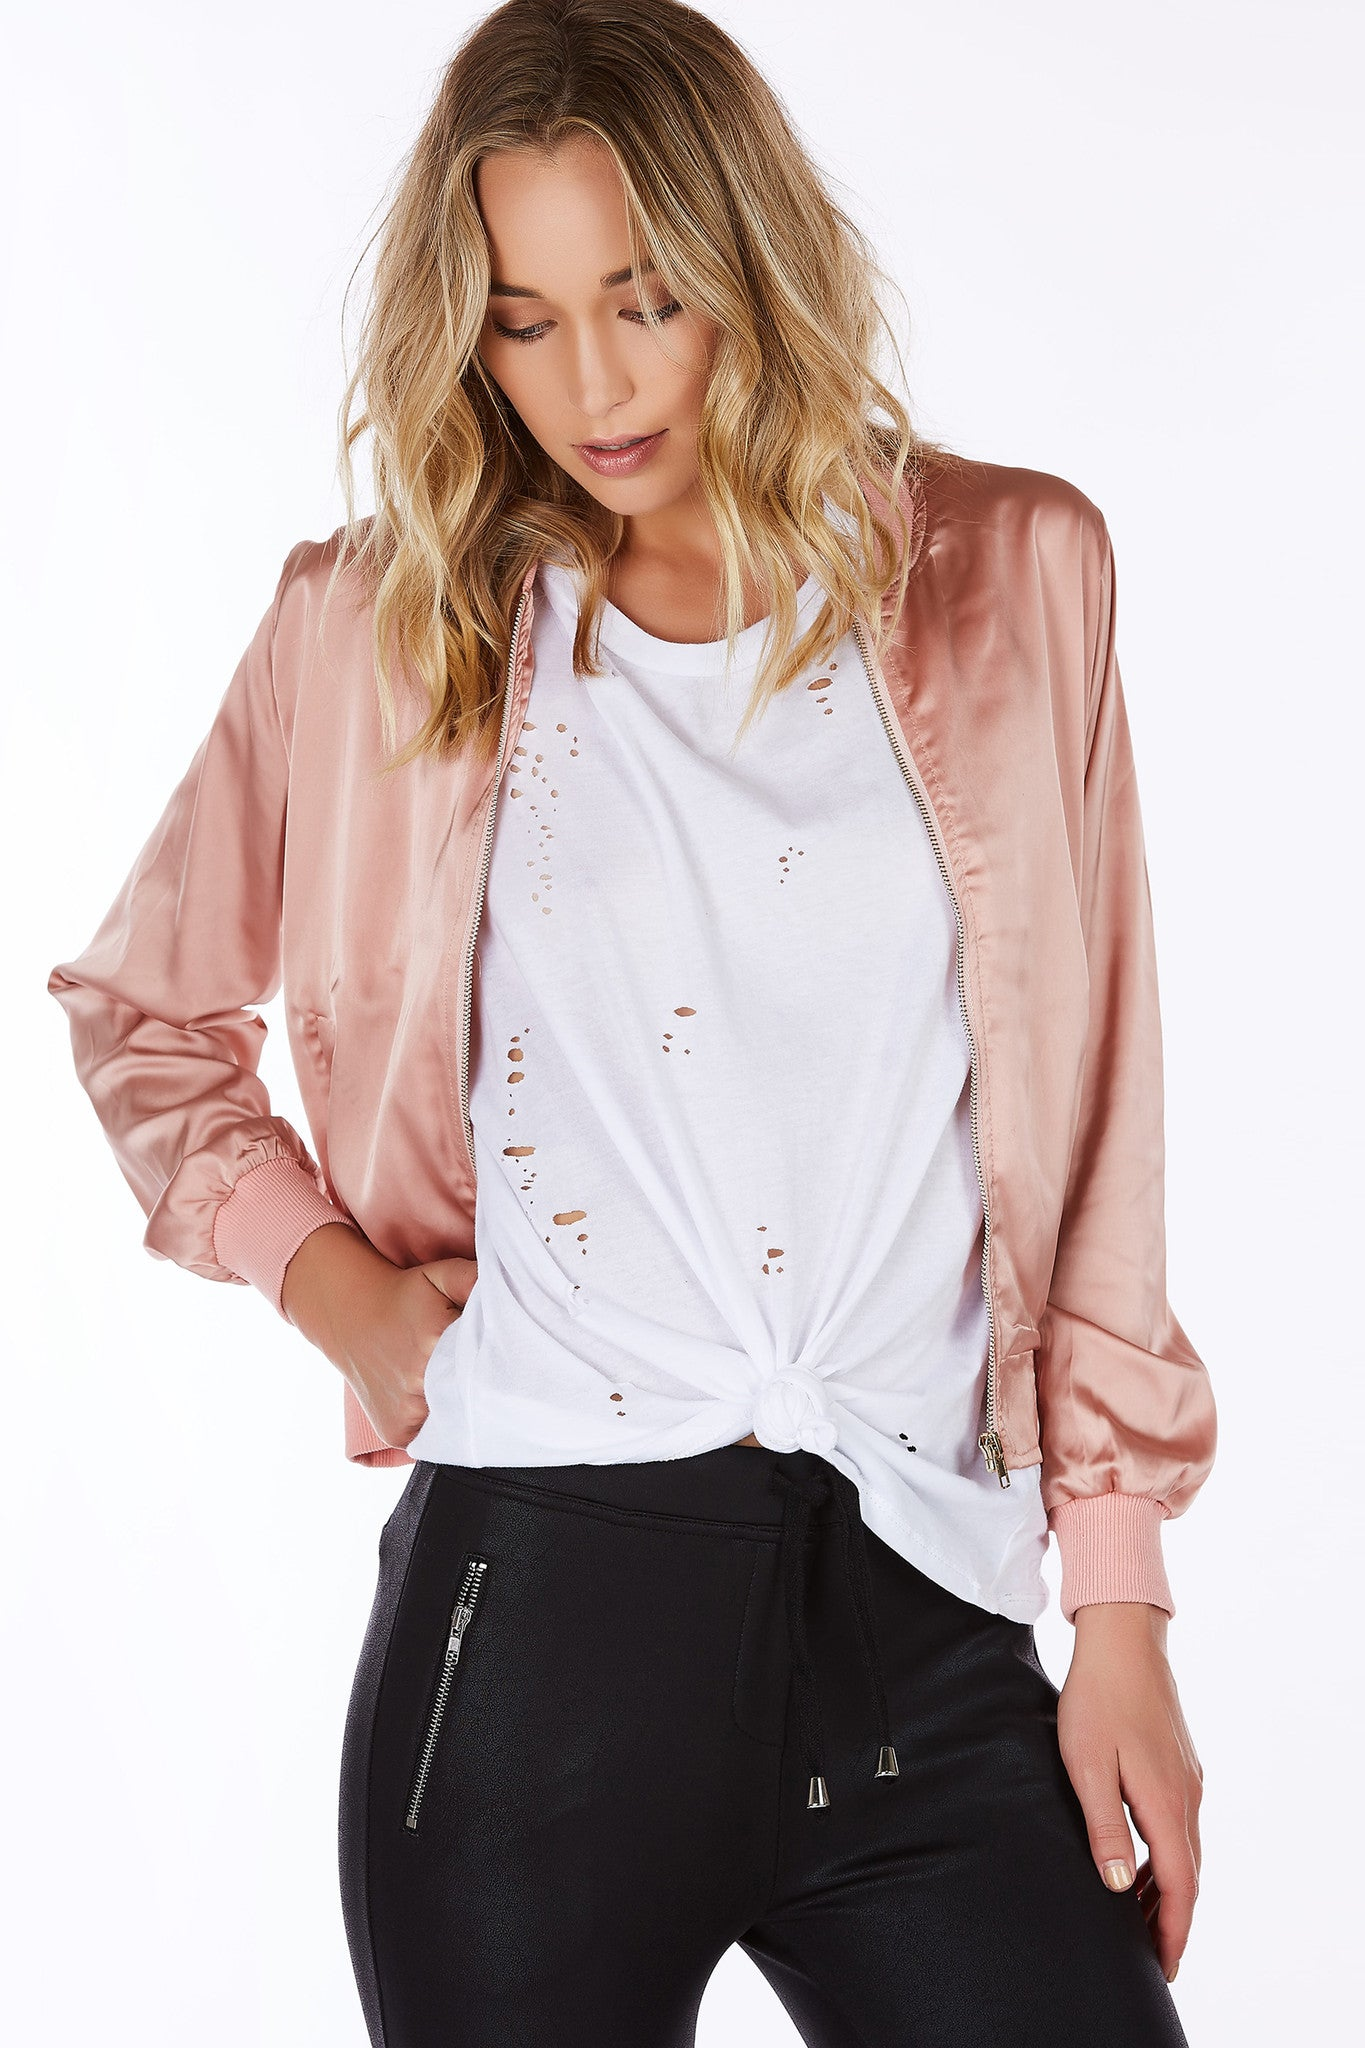 The perfect jacket for Summer nights. Classic bomber design with a chic, silky finish. Two functional pockets with single front zip closure. Great to throw on over a midi dress for a night time look.